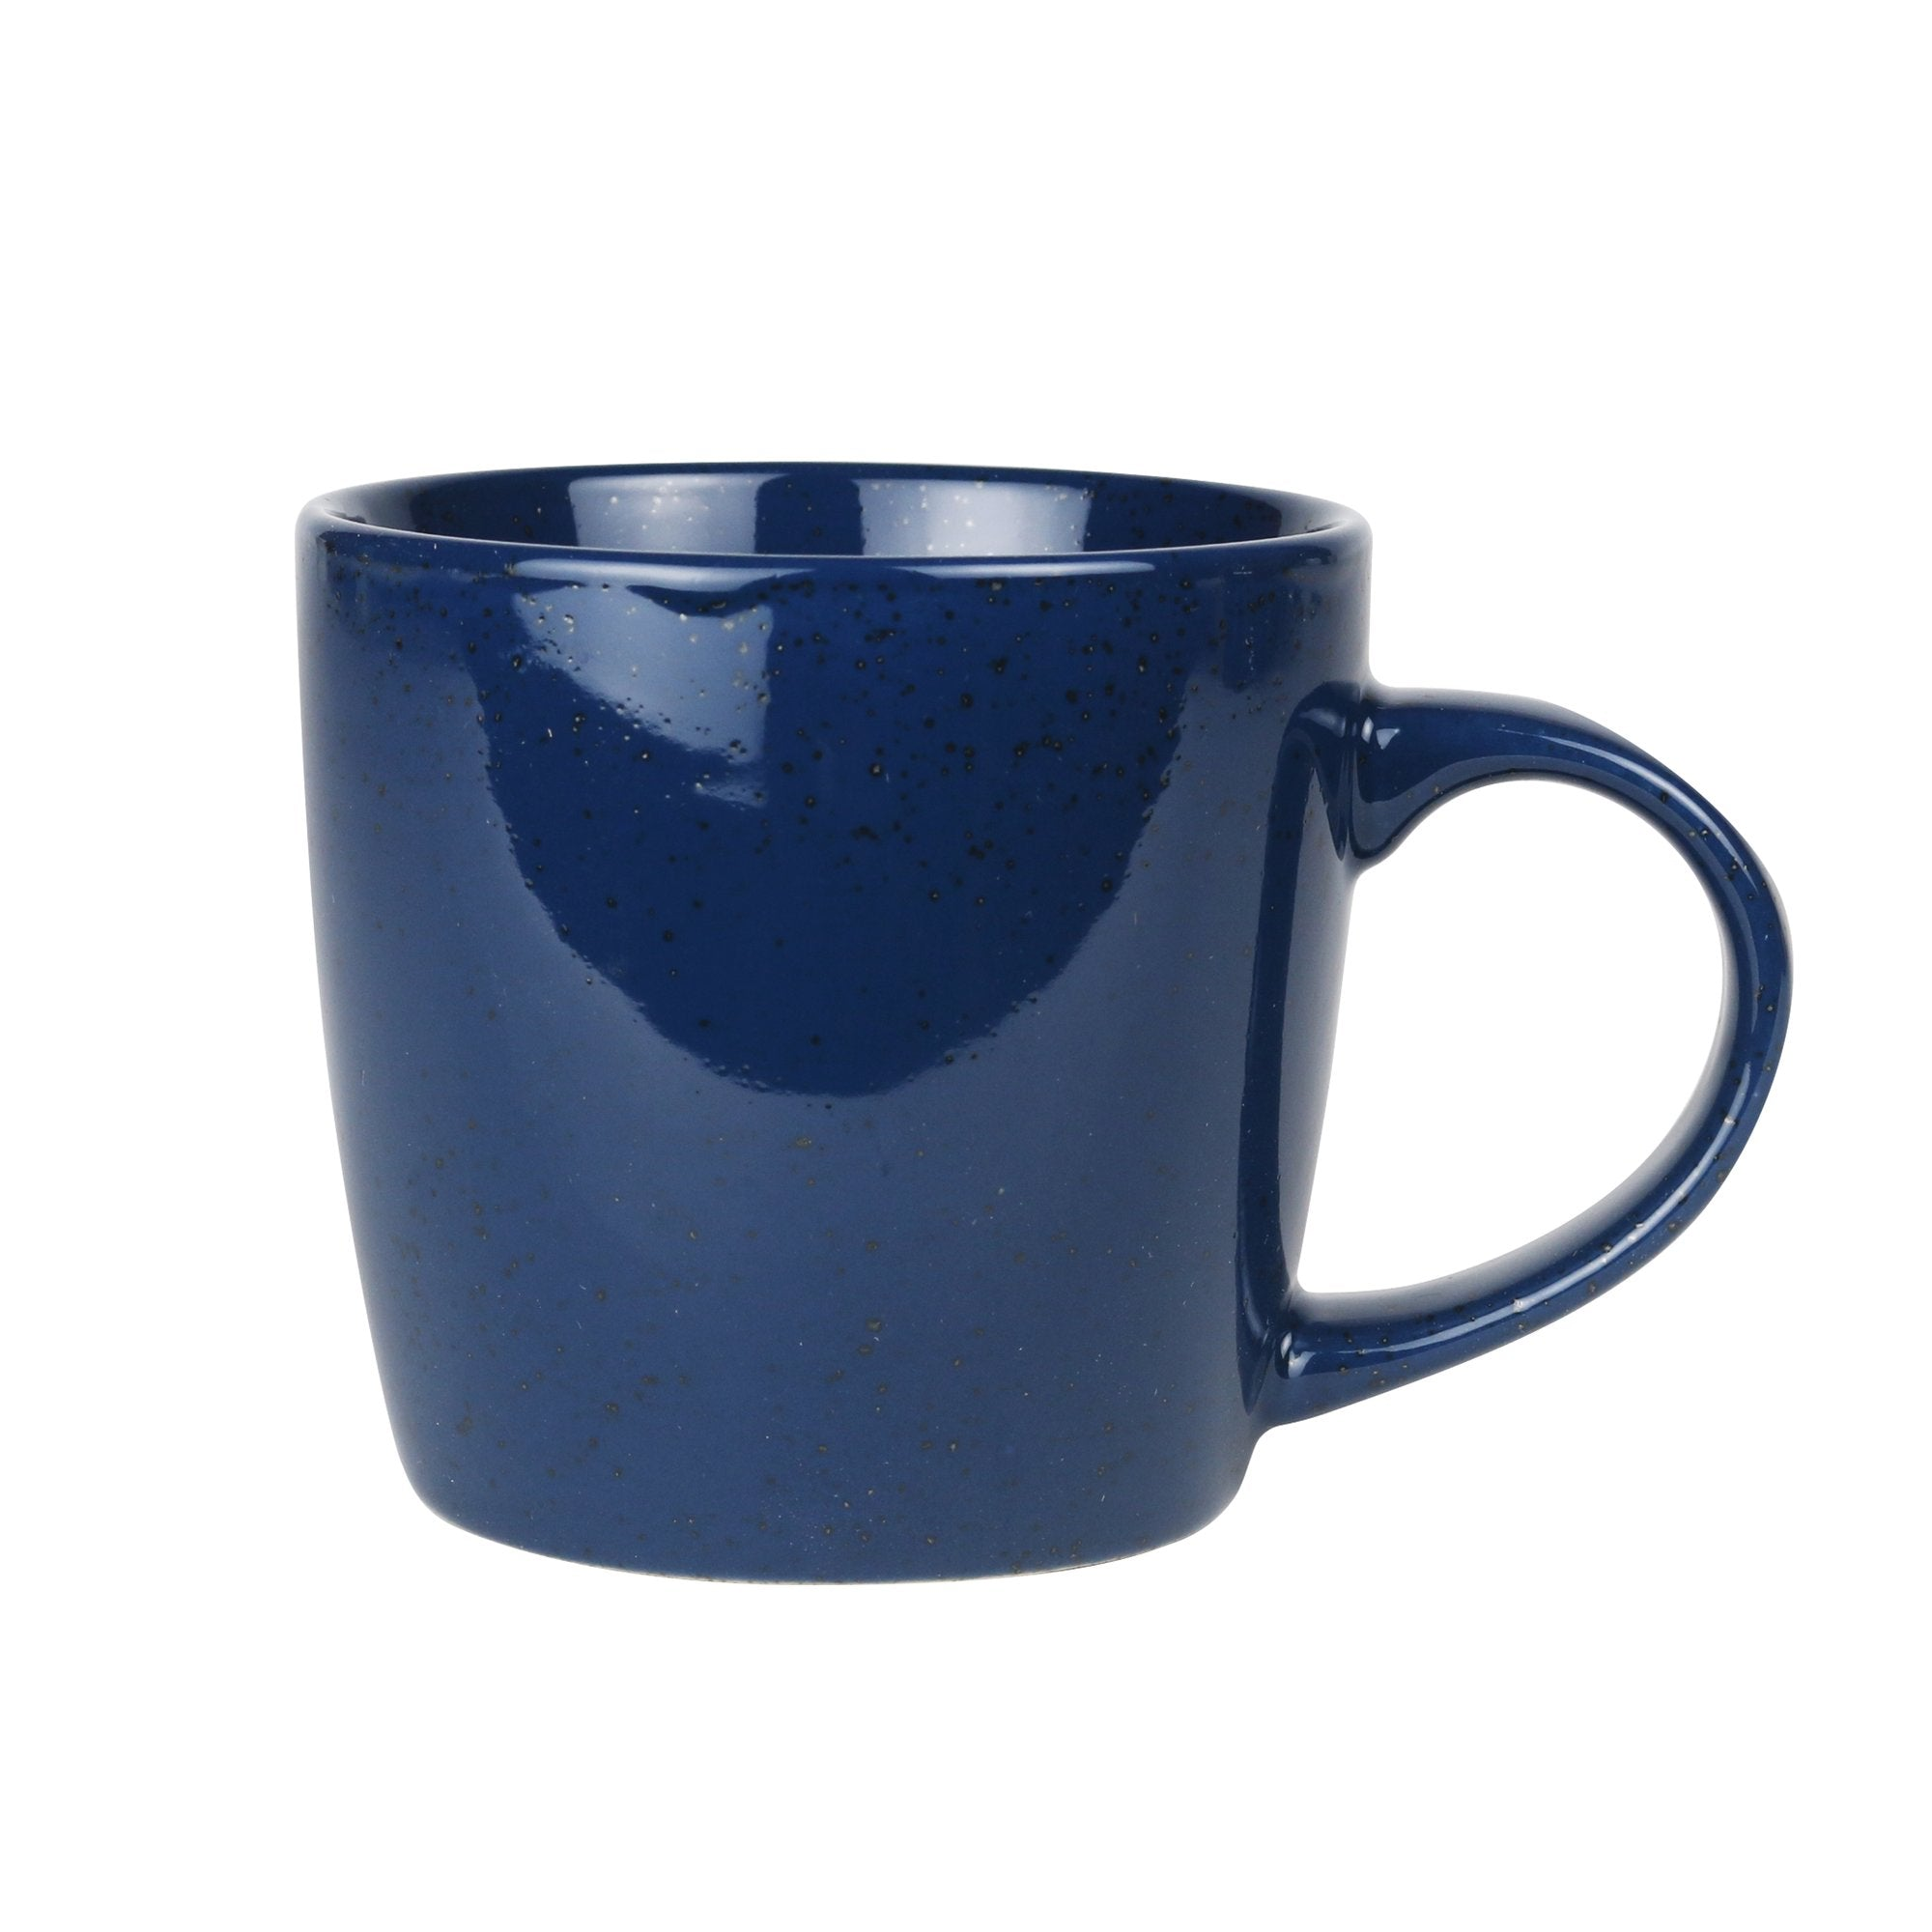 Mug Set of 4 |Blue Granite |Robert Gordon